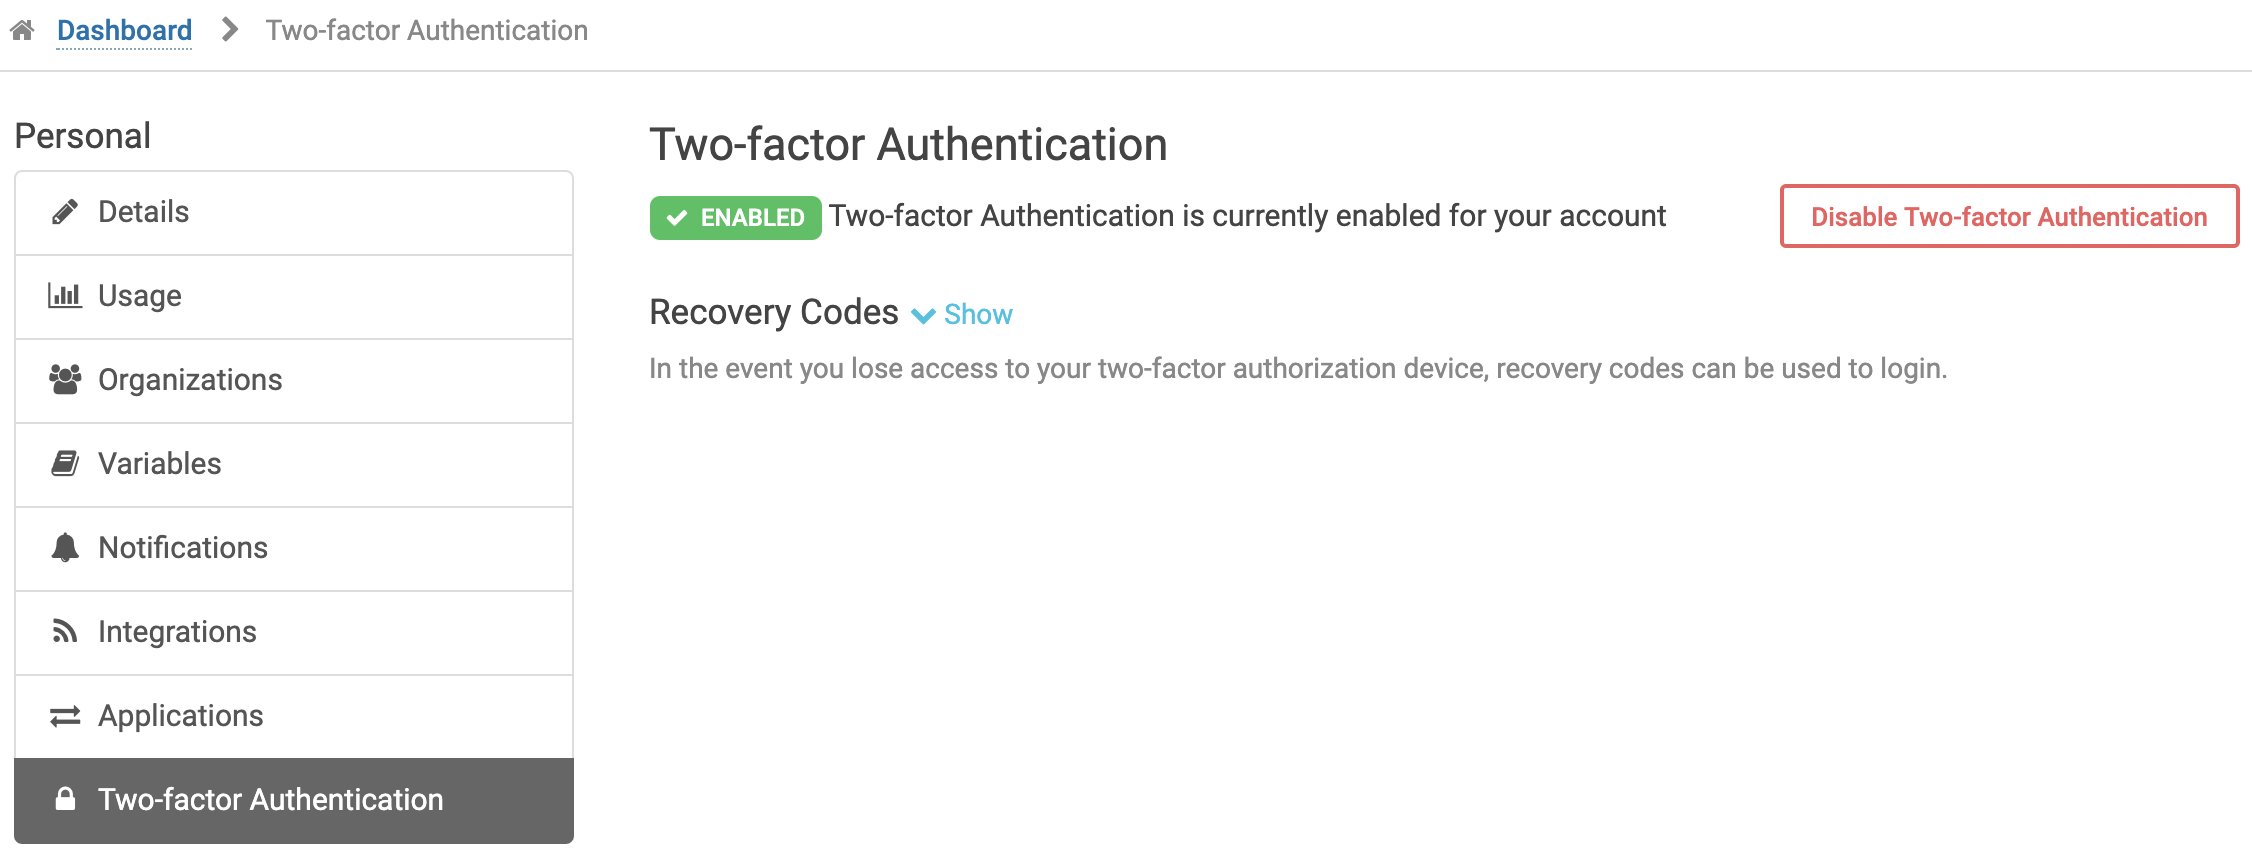 Two-factor Authentication settings when enabled